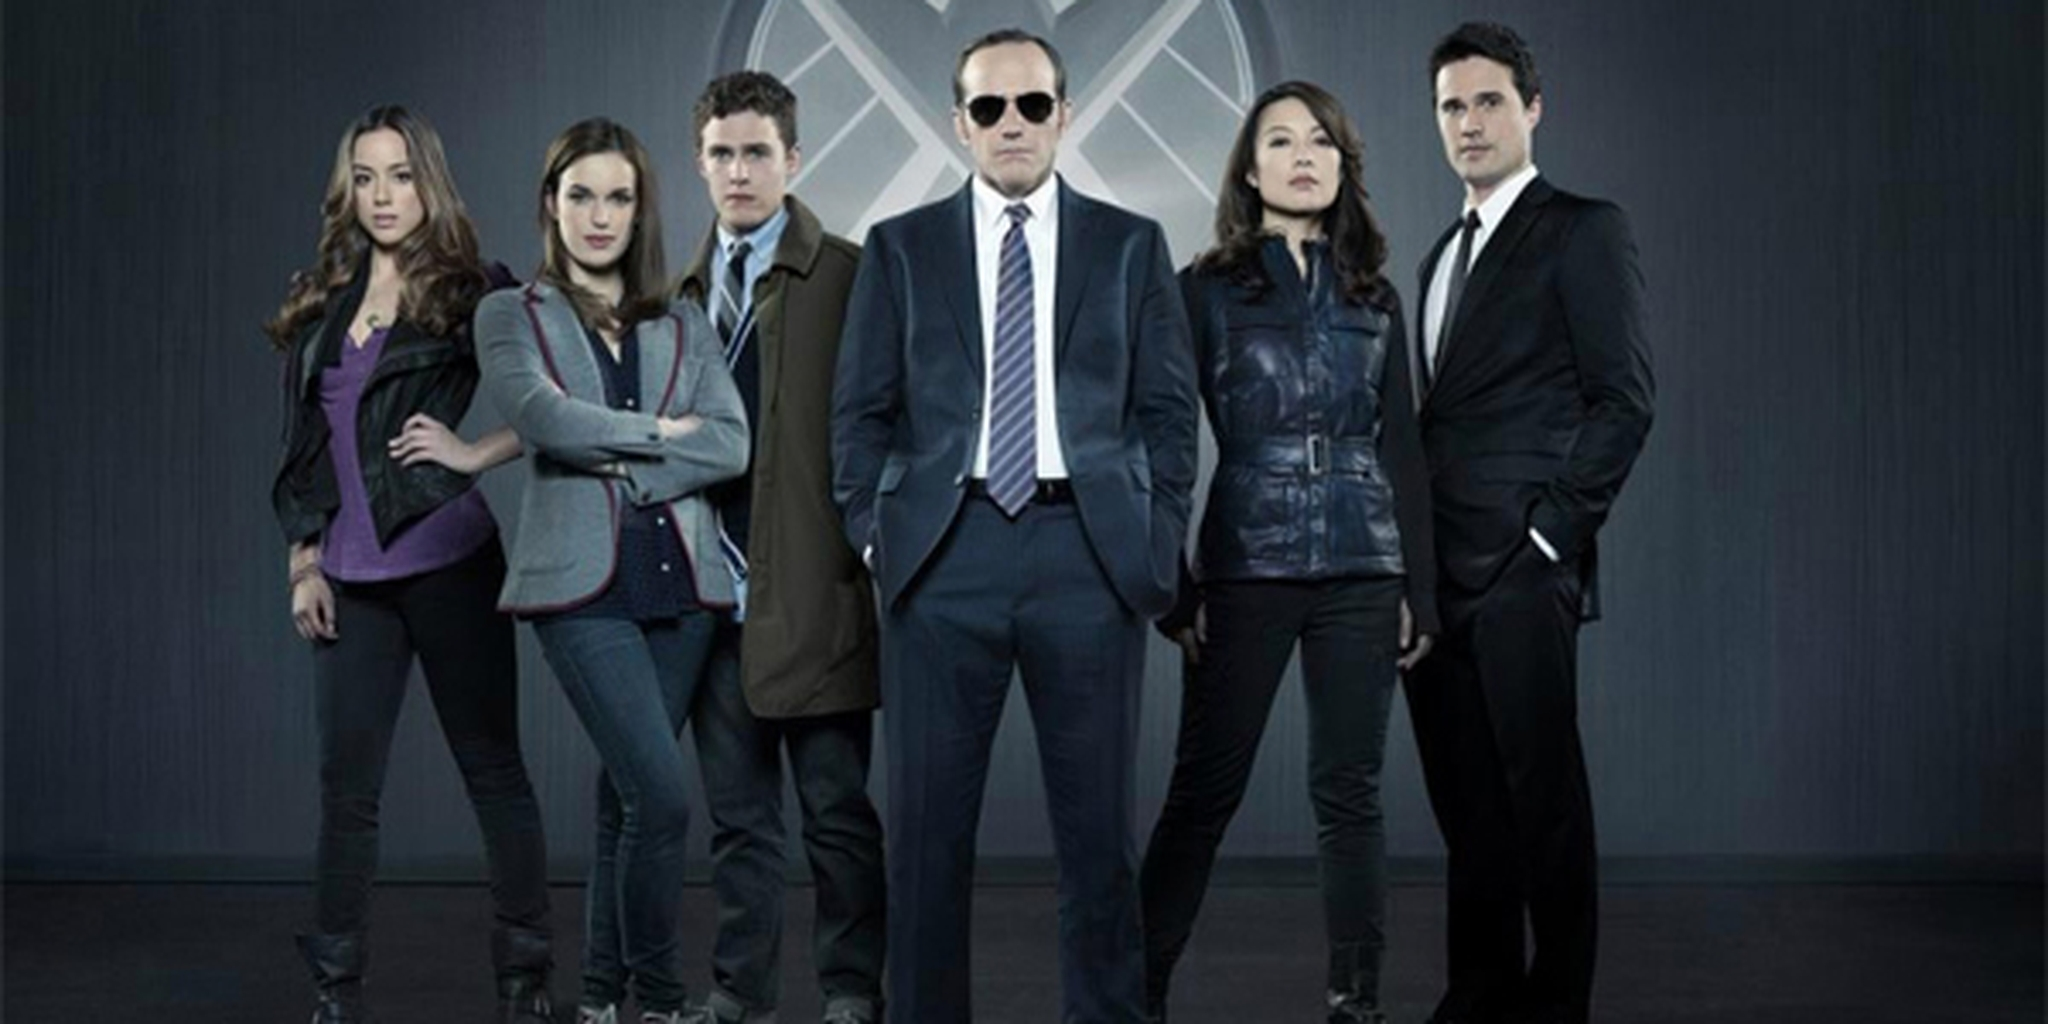 Agents Of S.H.I.E.L.D. Unleashes Teaser Promo - G4tv.com